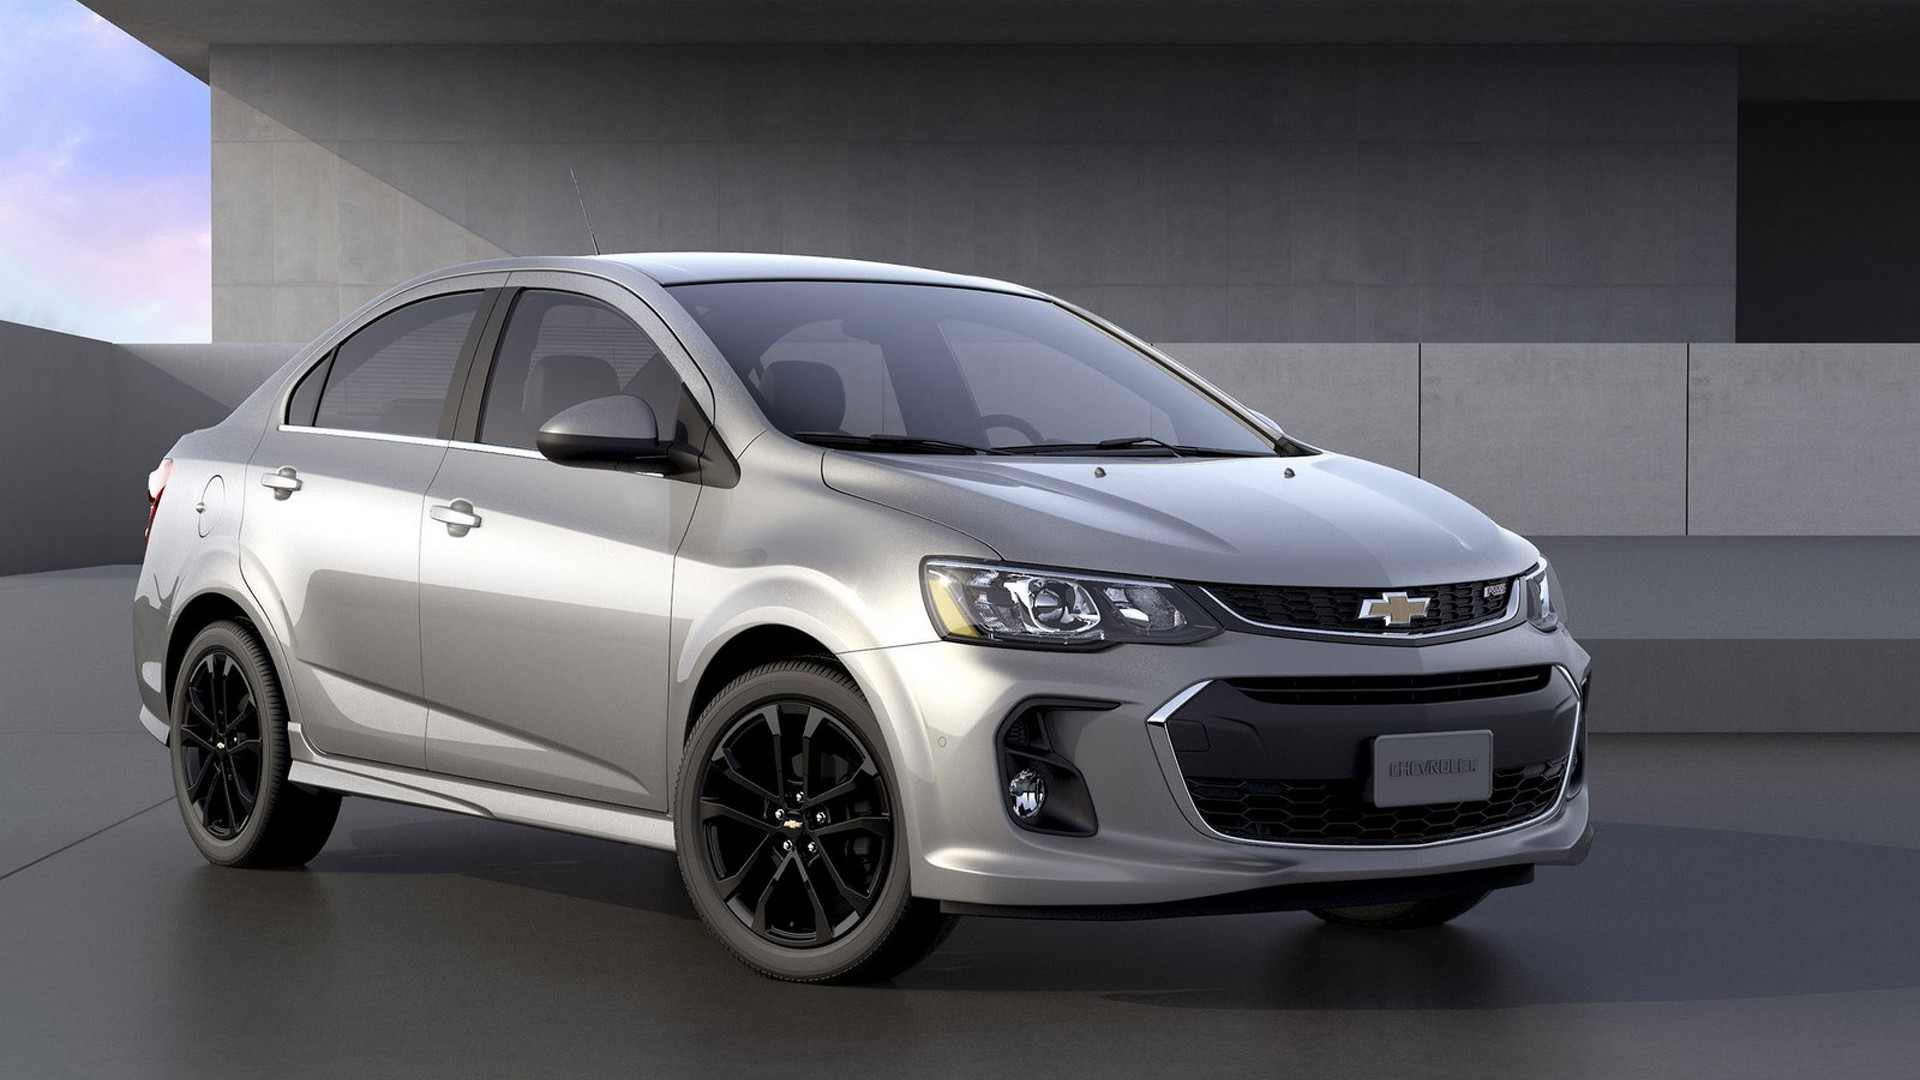 2017 Chevy Sonic facelift unveiled for New York Chevrolet ...